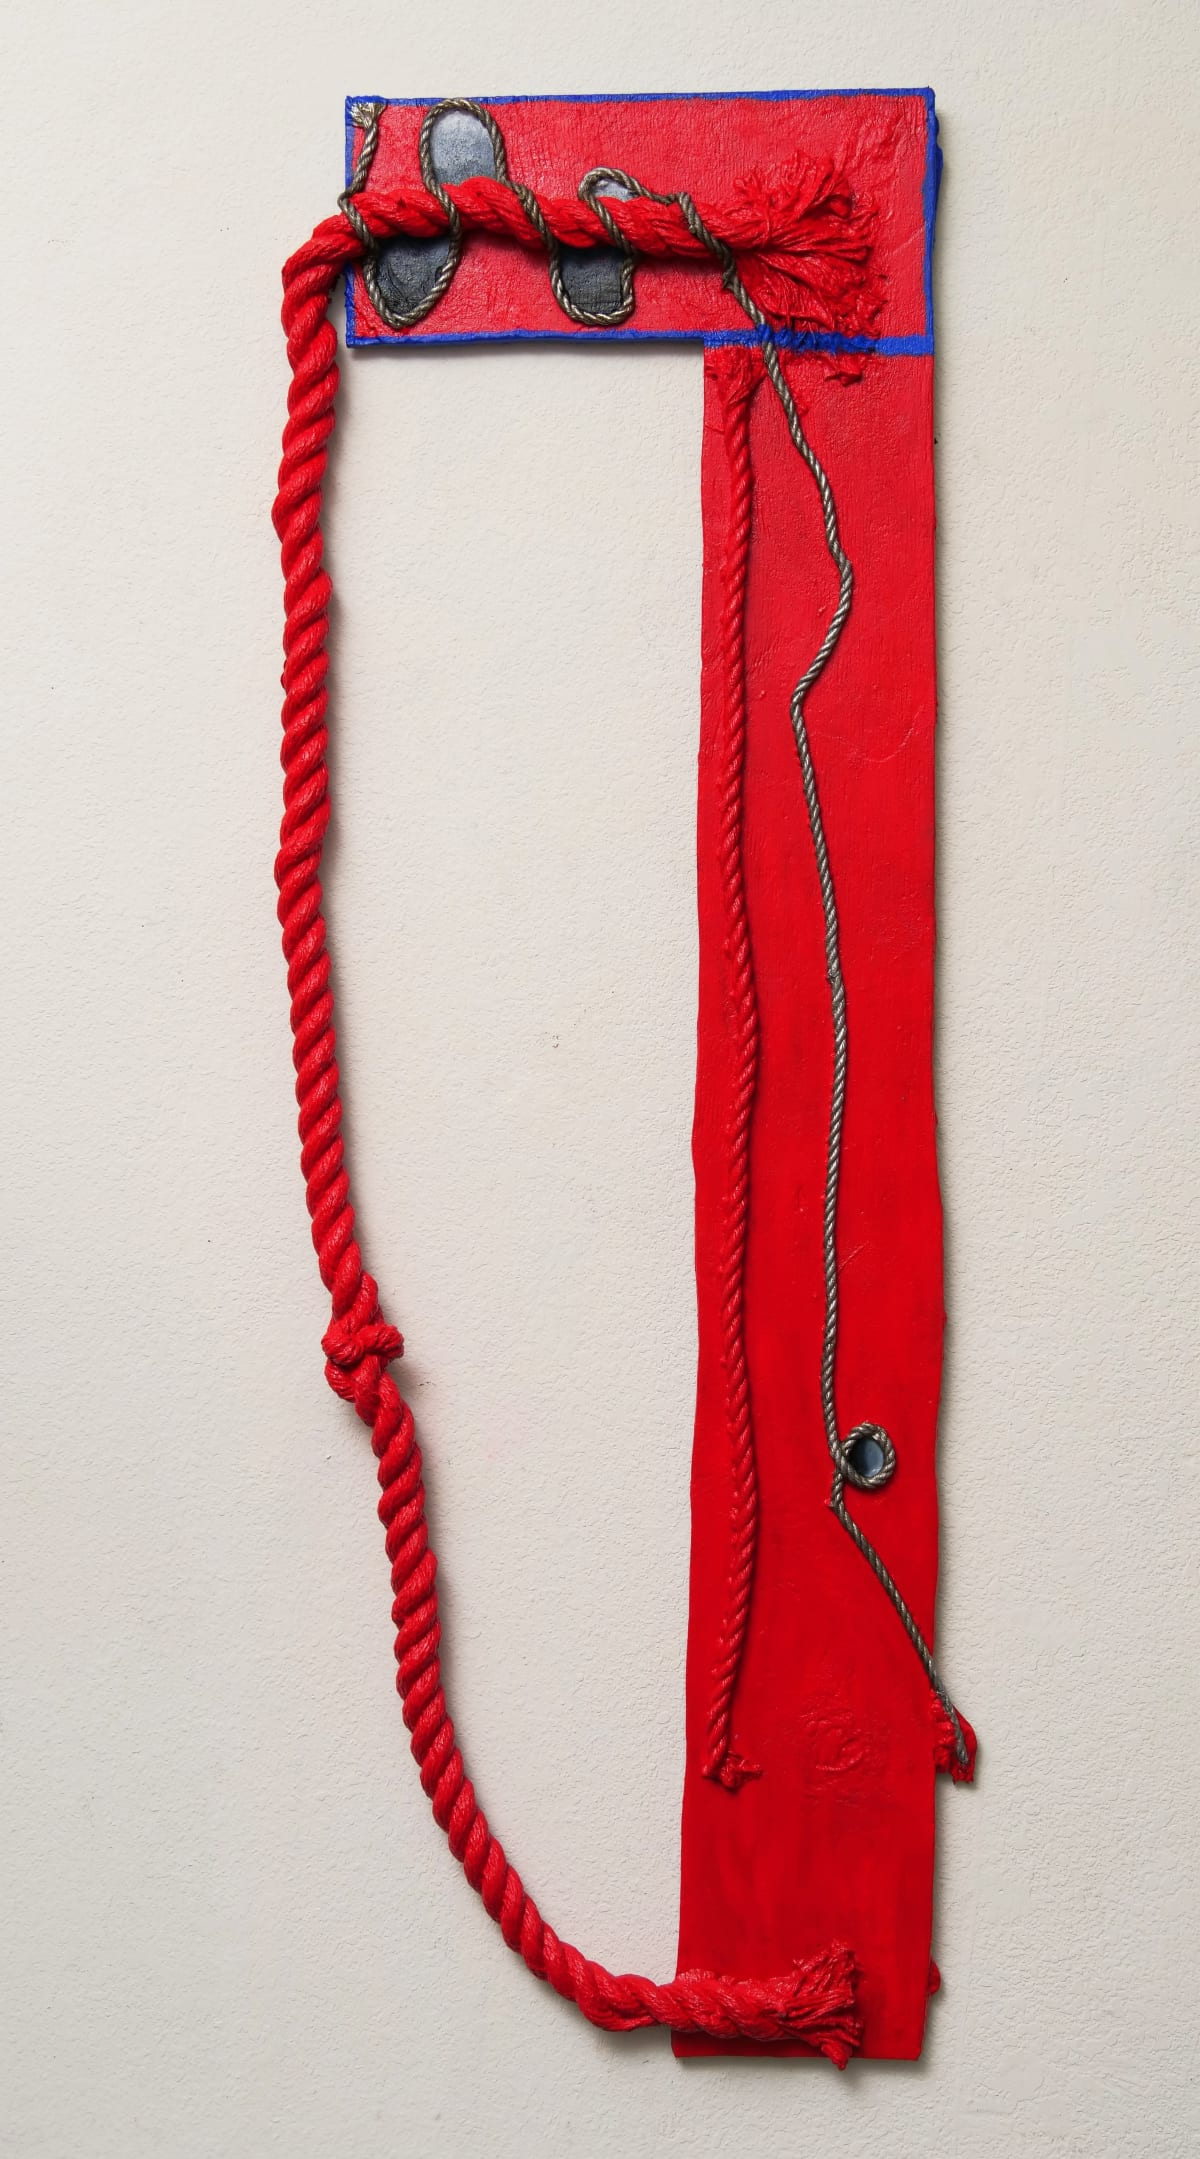 Katy Cowan and rope and wood and stream, 2019